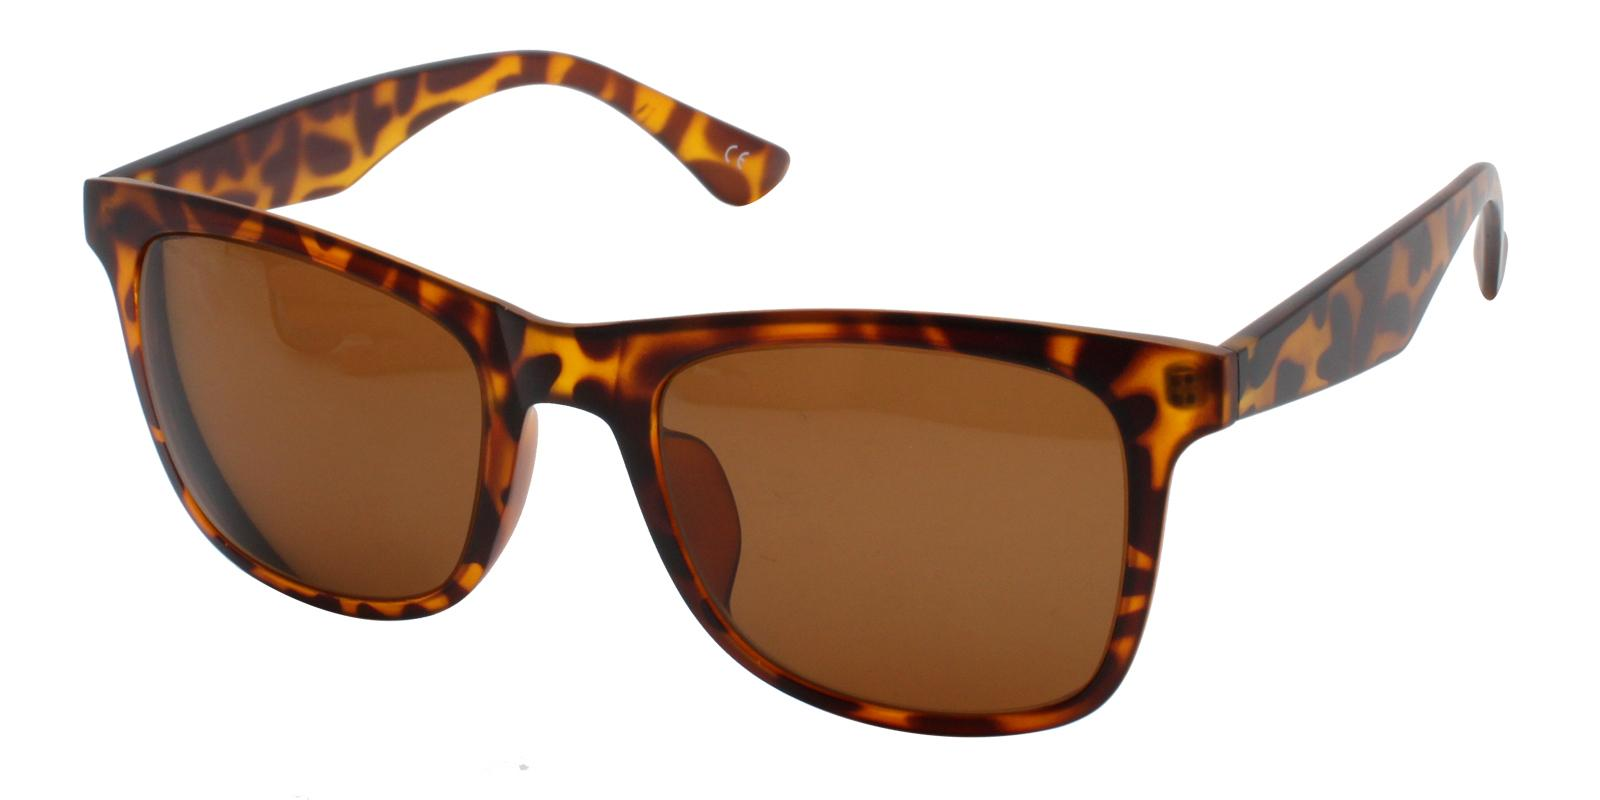 Oman Brown TR Sunglasses , UniversalBridgeFit Frames from ABBE Glasses